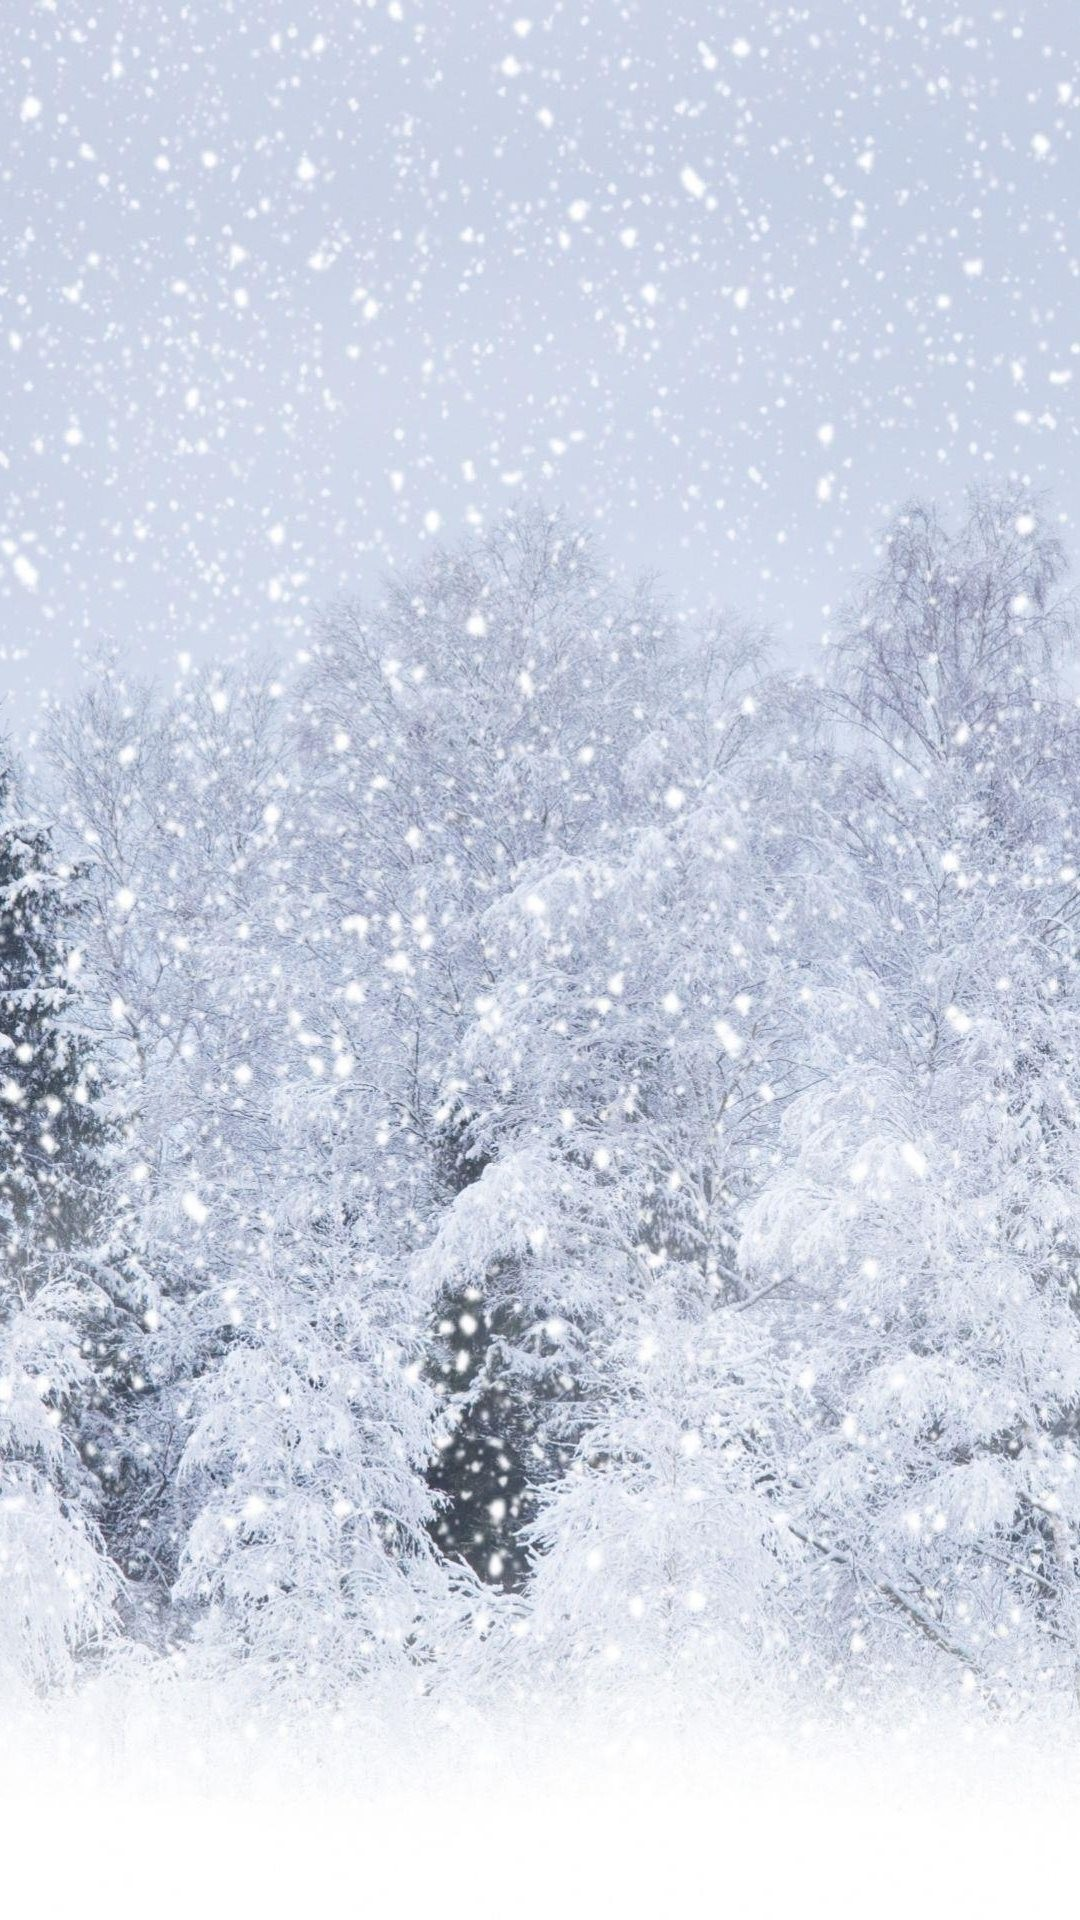 The most beautiful winter wallpapers for iphone